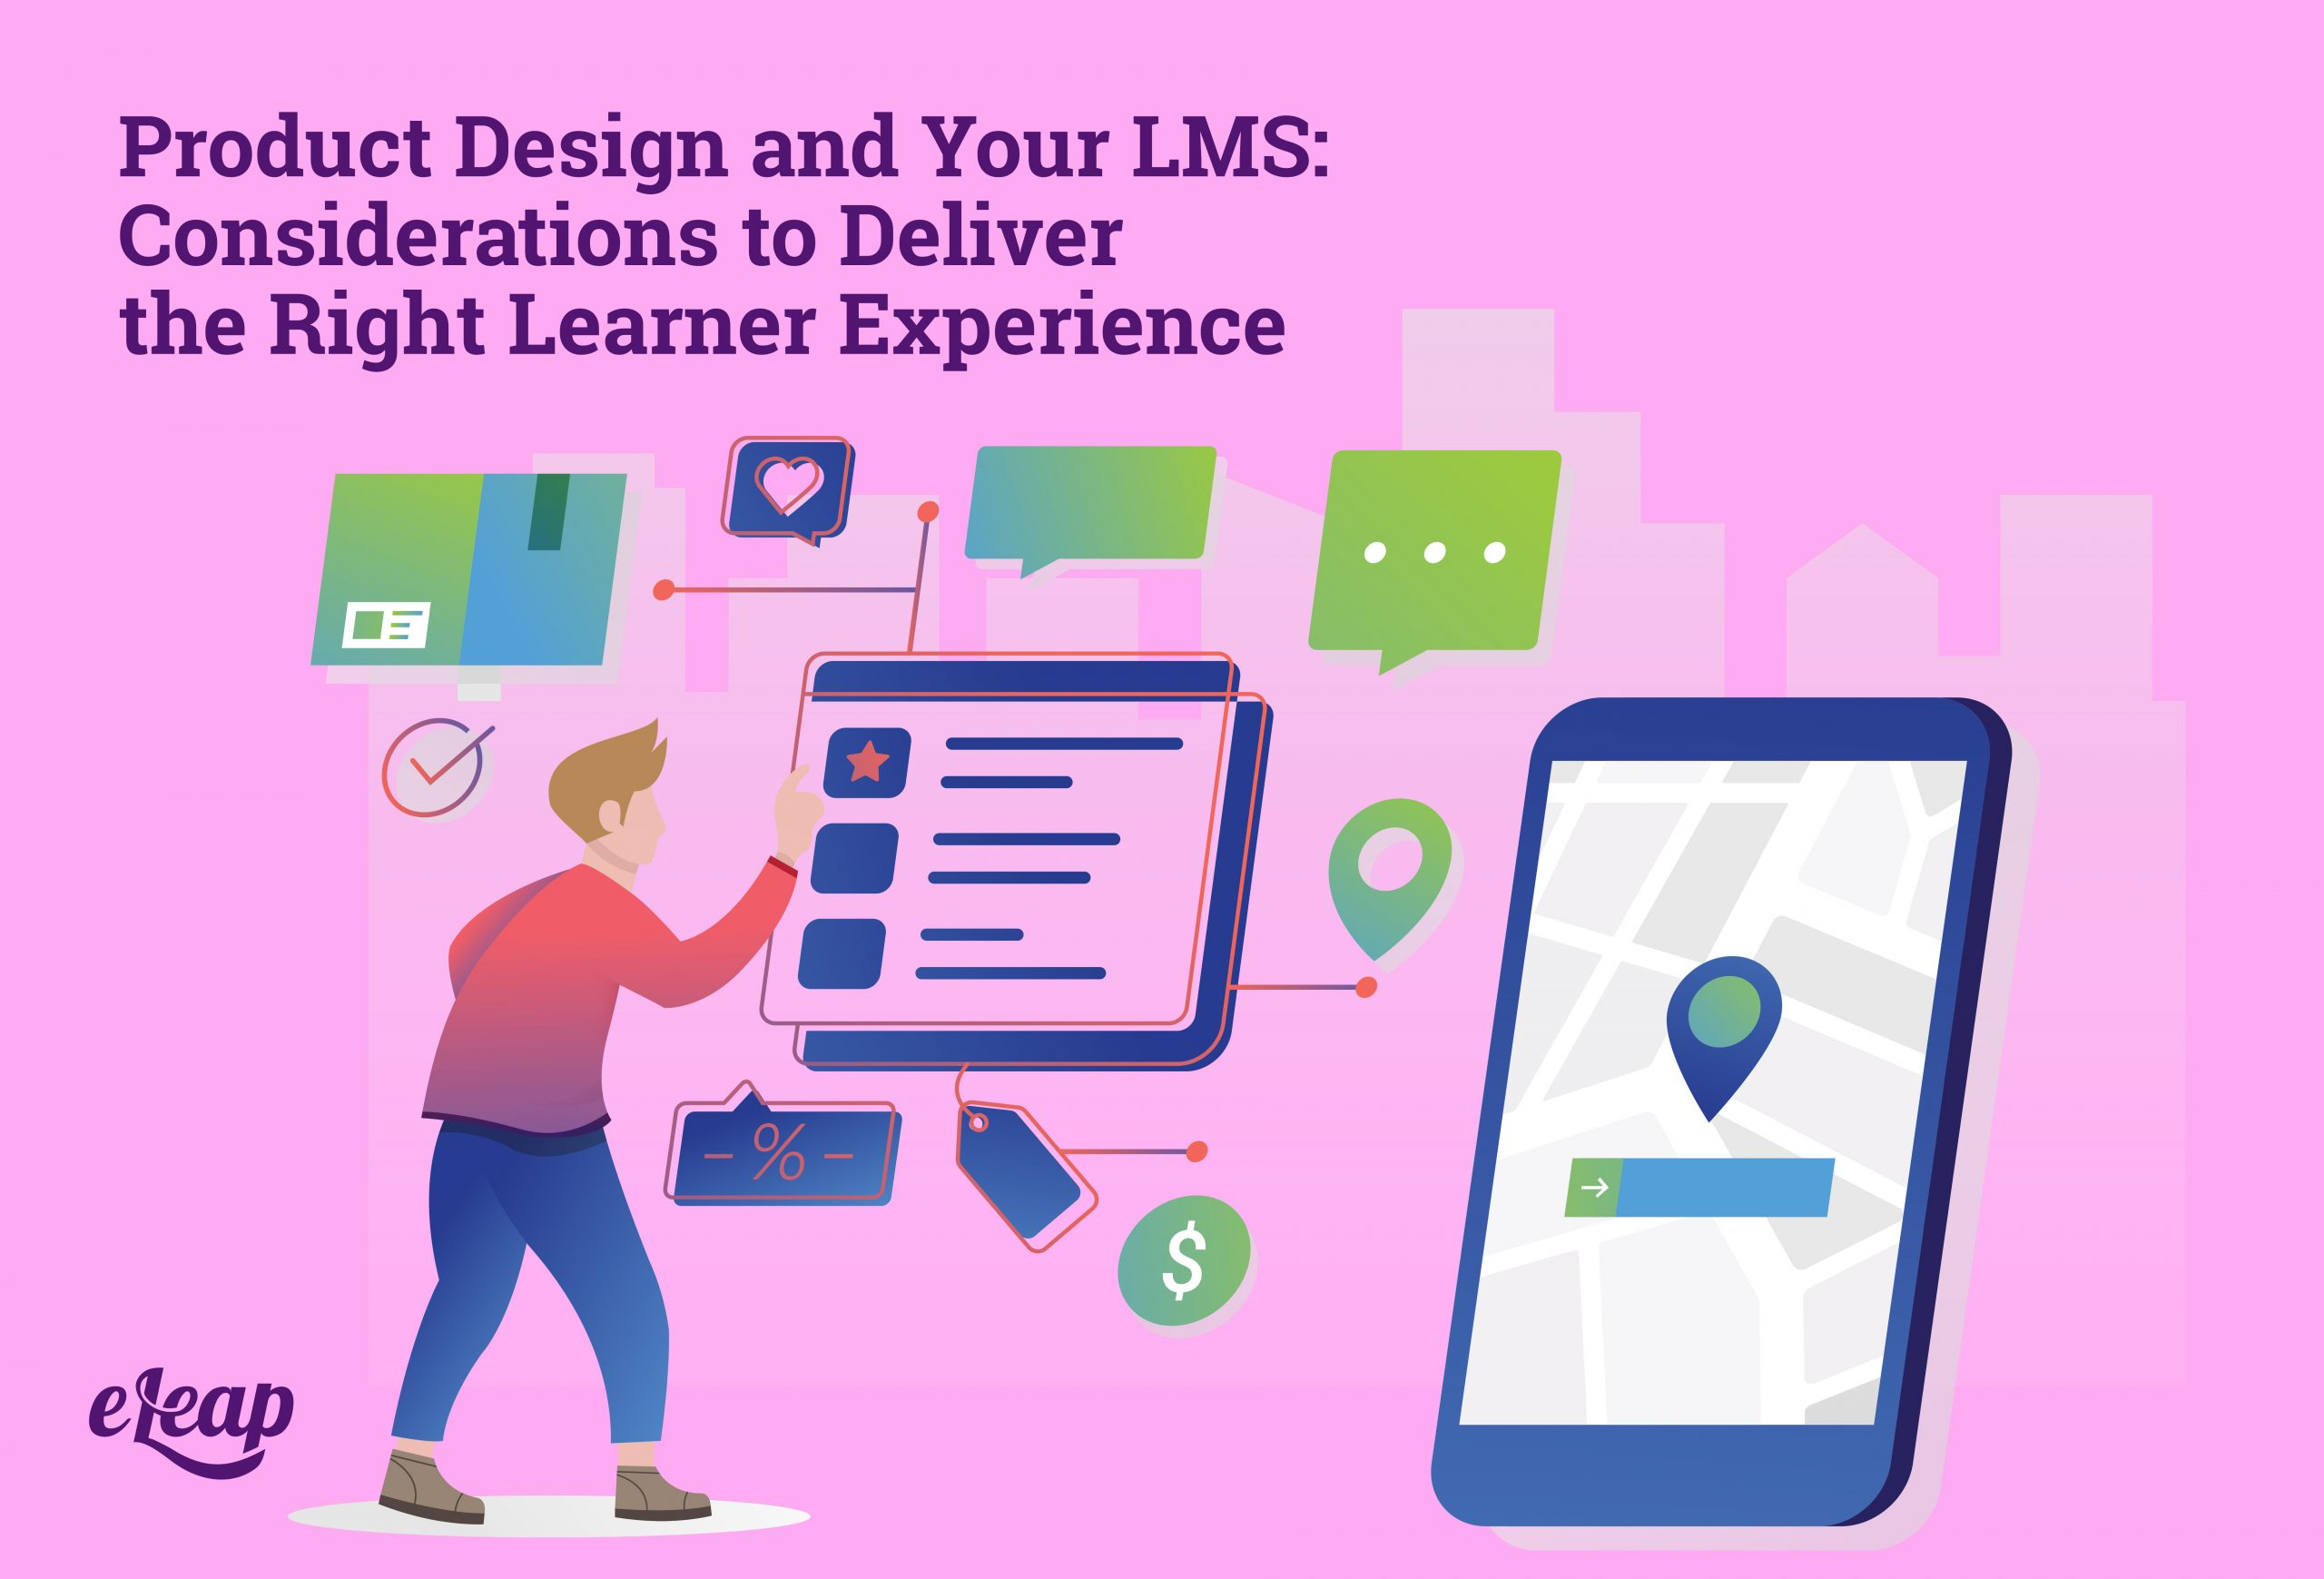 Product Design and Your LMS: Considerations to Deliver the Right Learner Experience